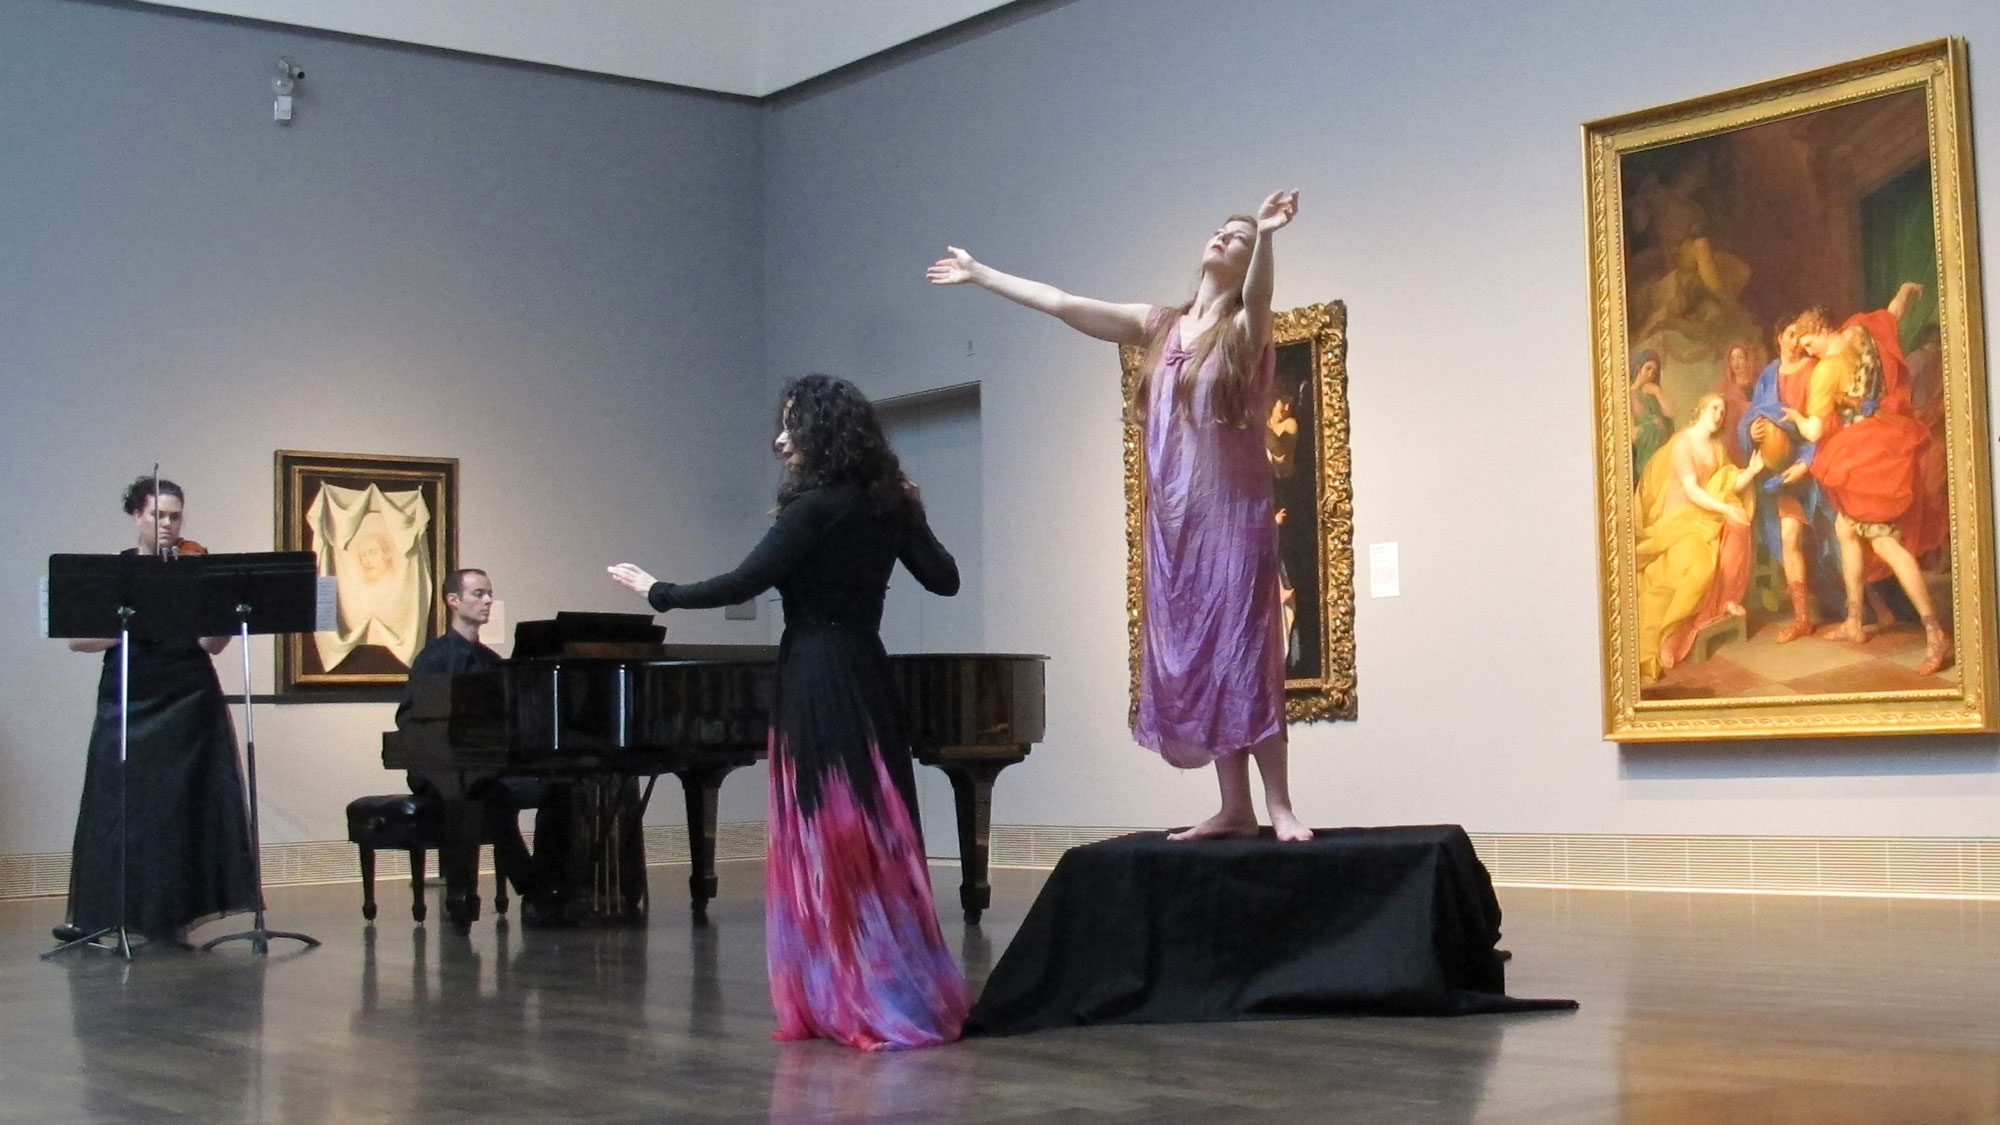 Klytemnestra.Misha Penton, soprano, artistic director, concept and libretto.A new chamber opera with music by Dominick Diorio. Meredith Harris, viola. Kyle Evans, piano. Meg Brooker, dancer.